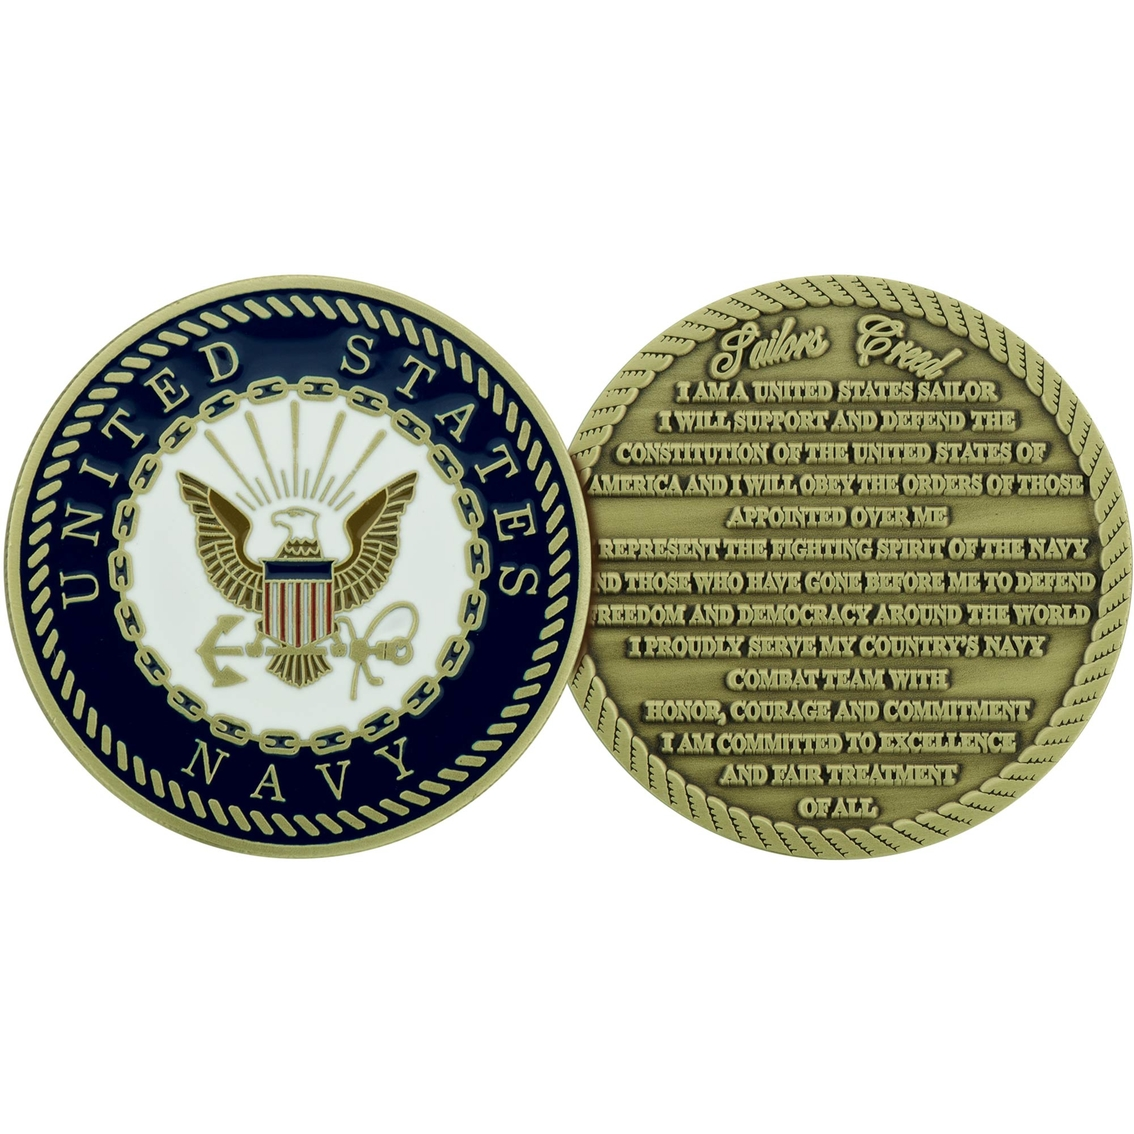 challenge coin navy usn sailor creed coin